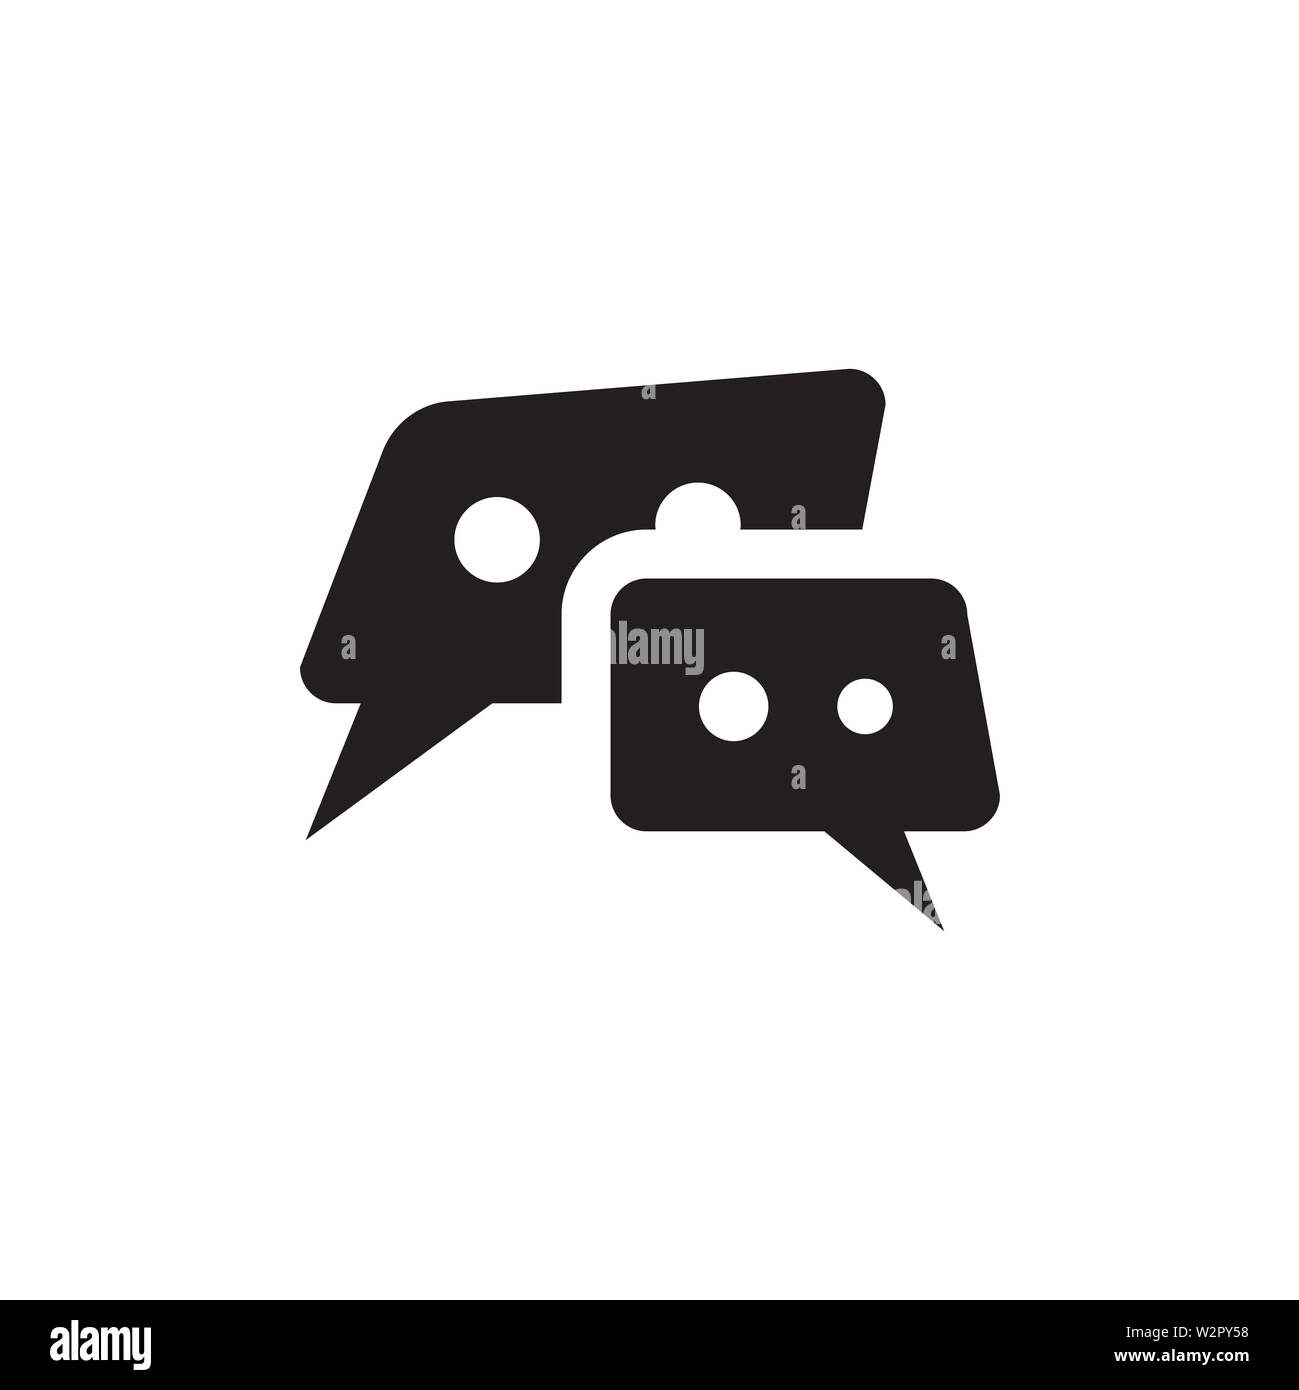 Speech Bubble Icon In Flat Style Vector For Apps, UI, Websites. Black Icon Vector Illustration. - Stock Image